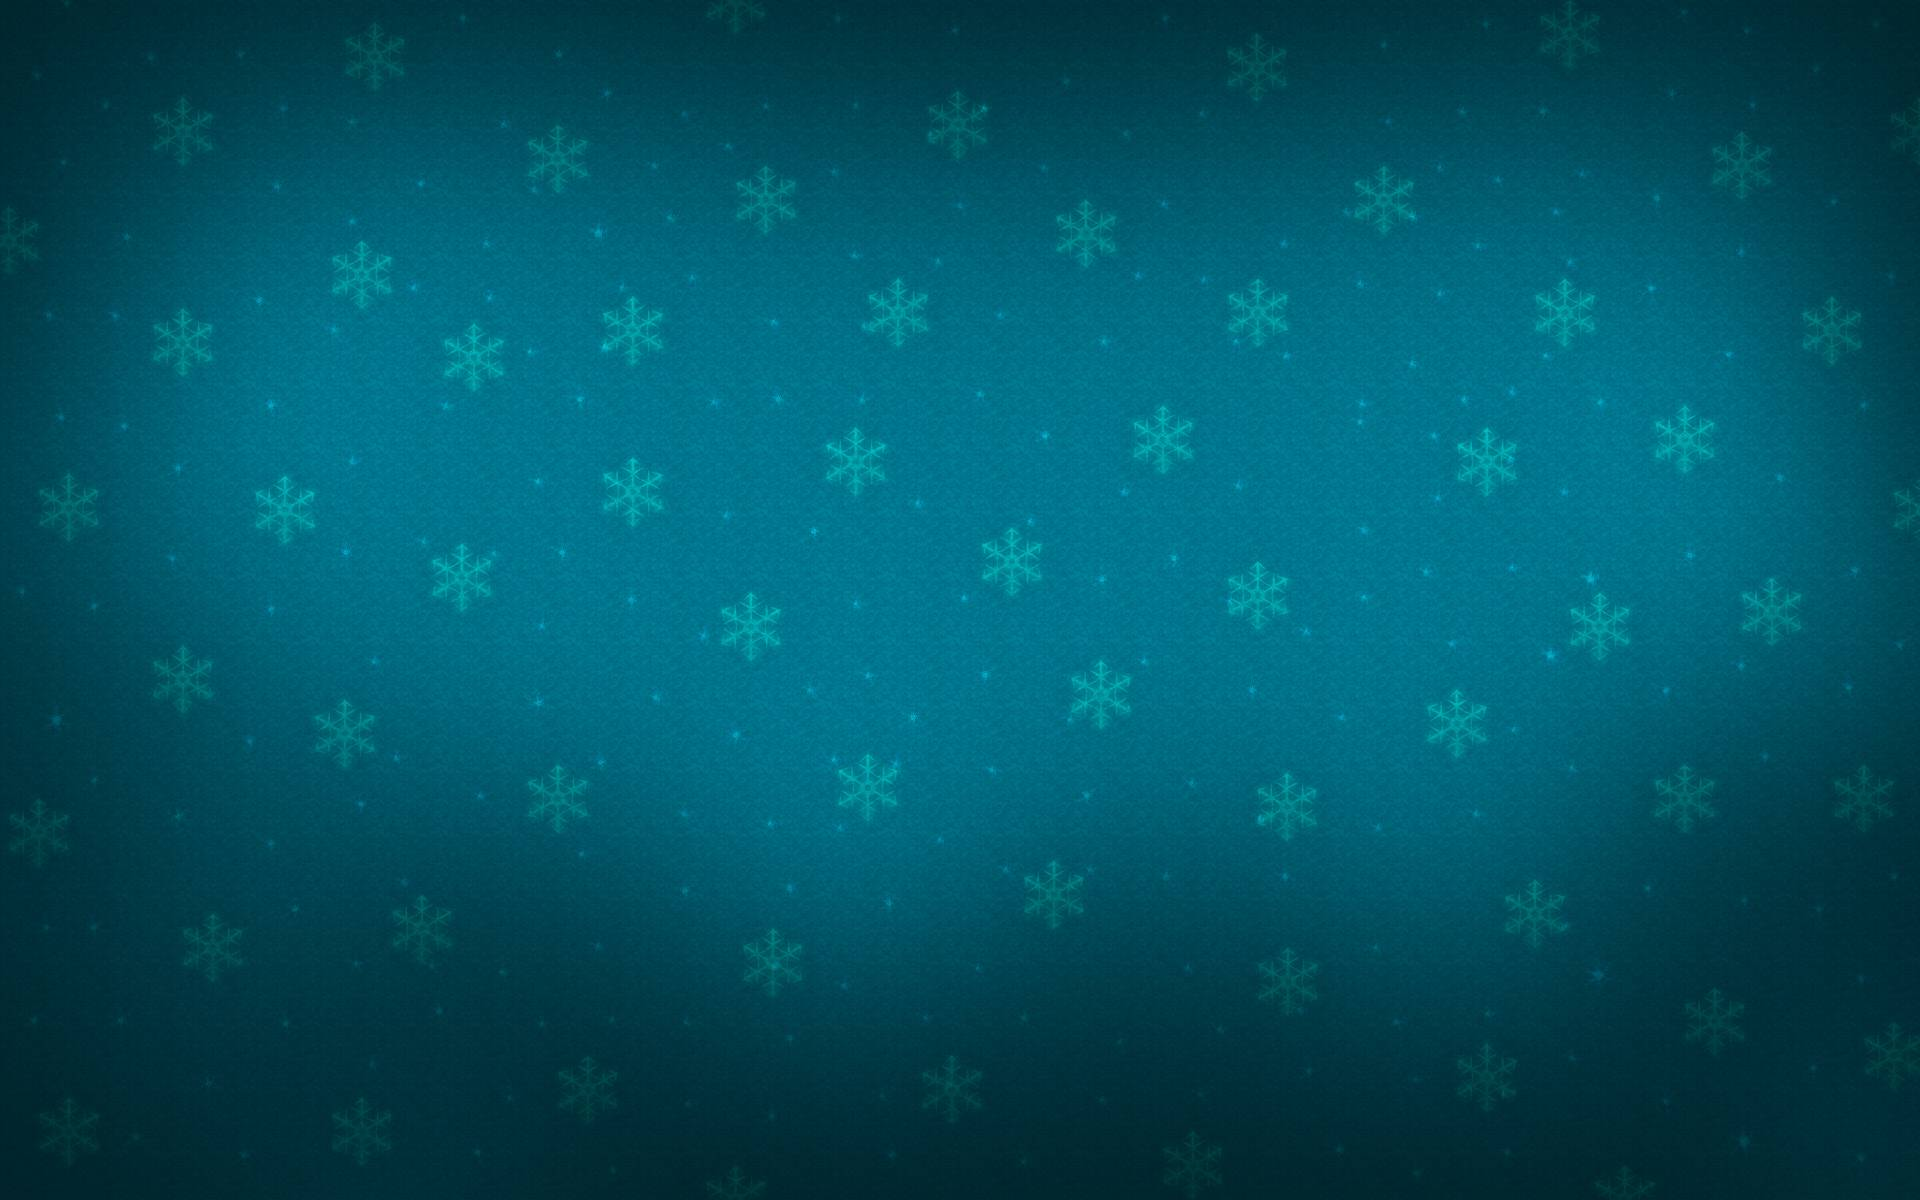 Blue Christmas Backgrounds - Wallpaper Cave